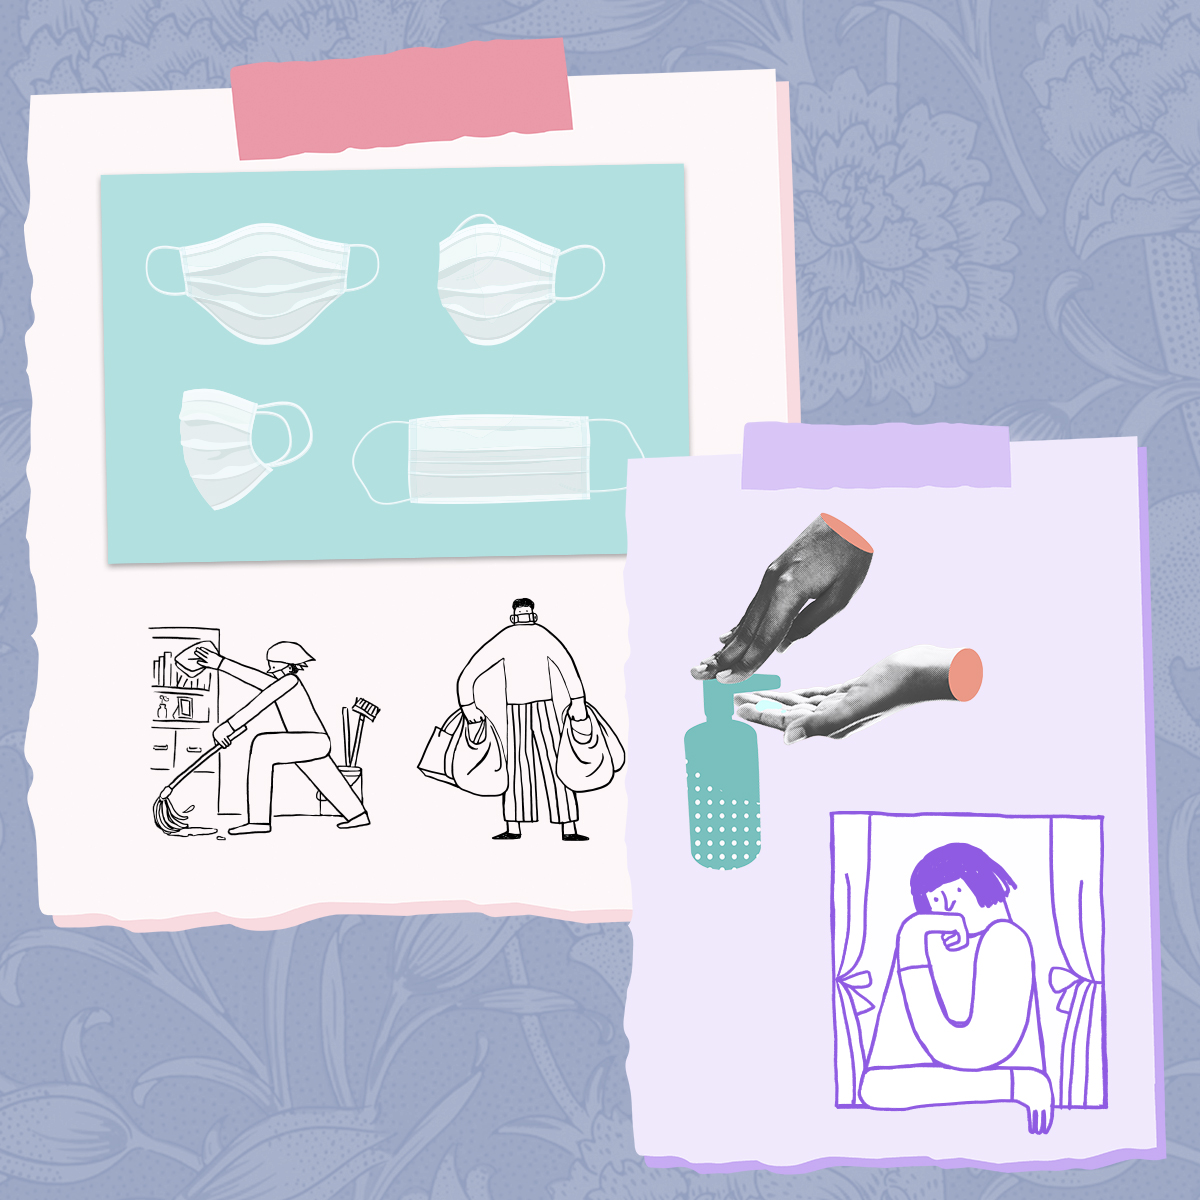 Illustrations of COVID-19 related scenes: face masks, washing hands, cleaning, grocery shopping, sitting alone by a window